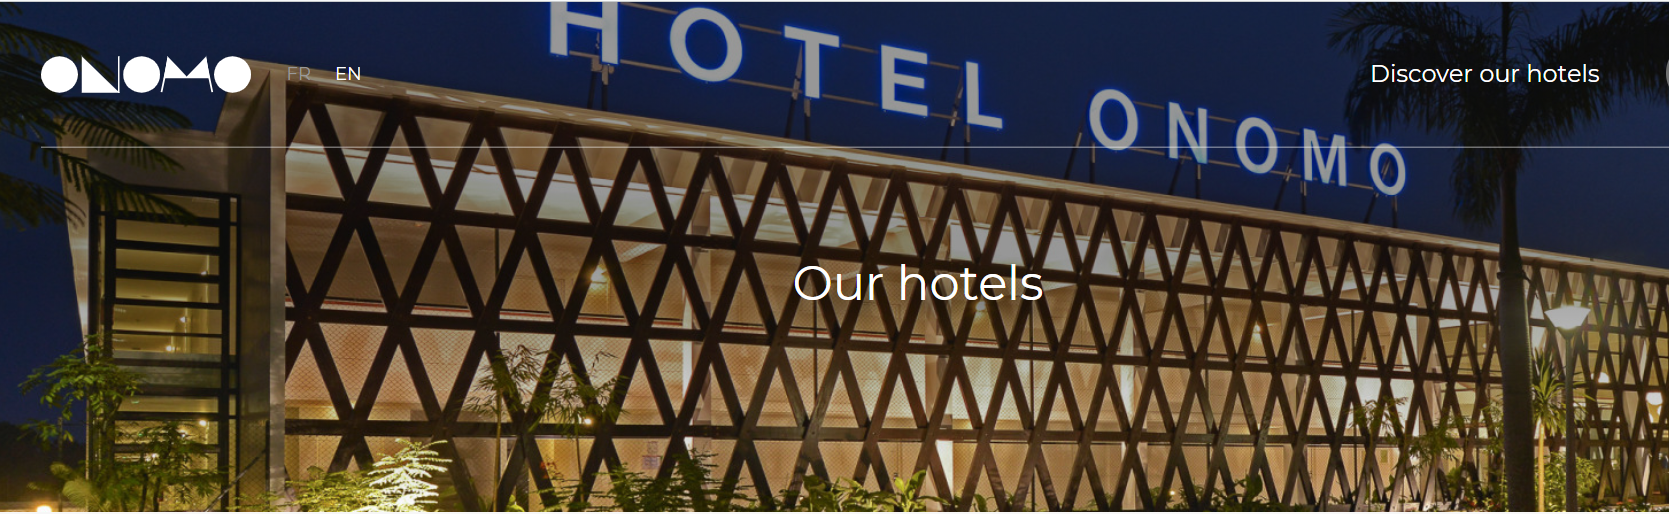 Onomo Hotels - hospitality at affordable tariffs ...